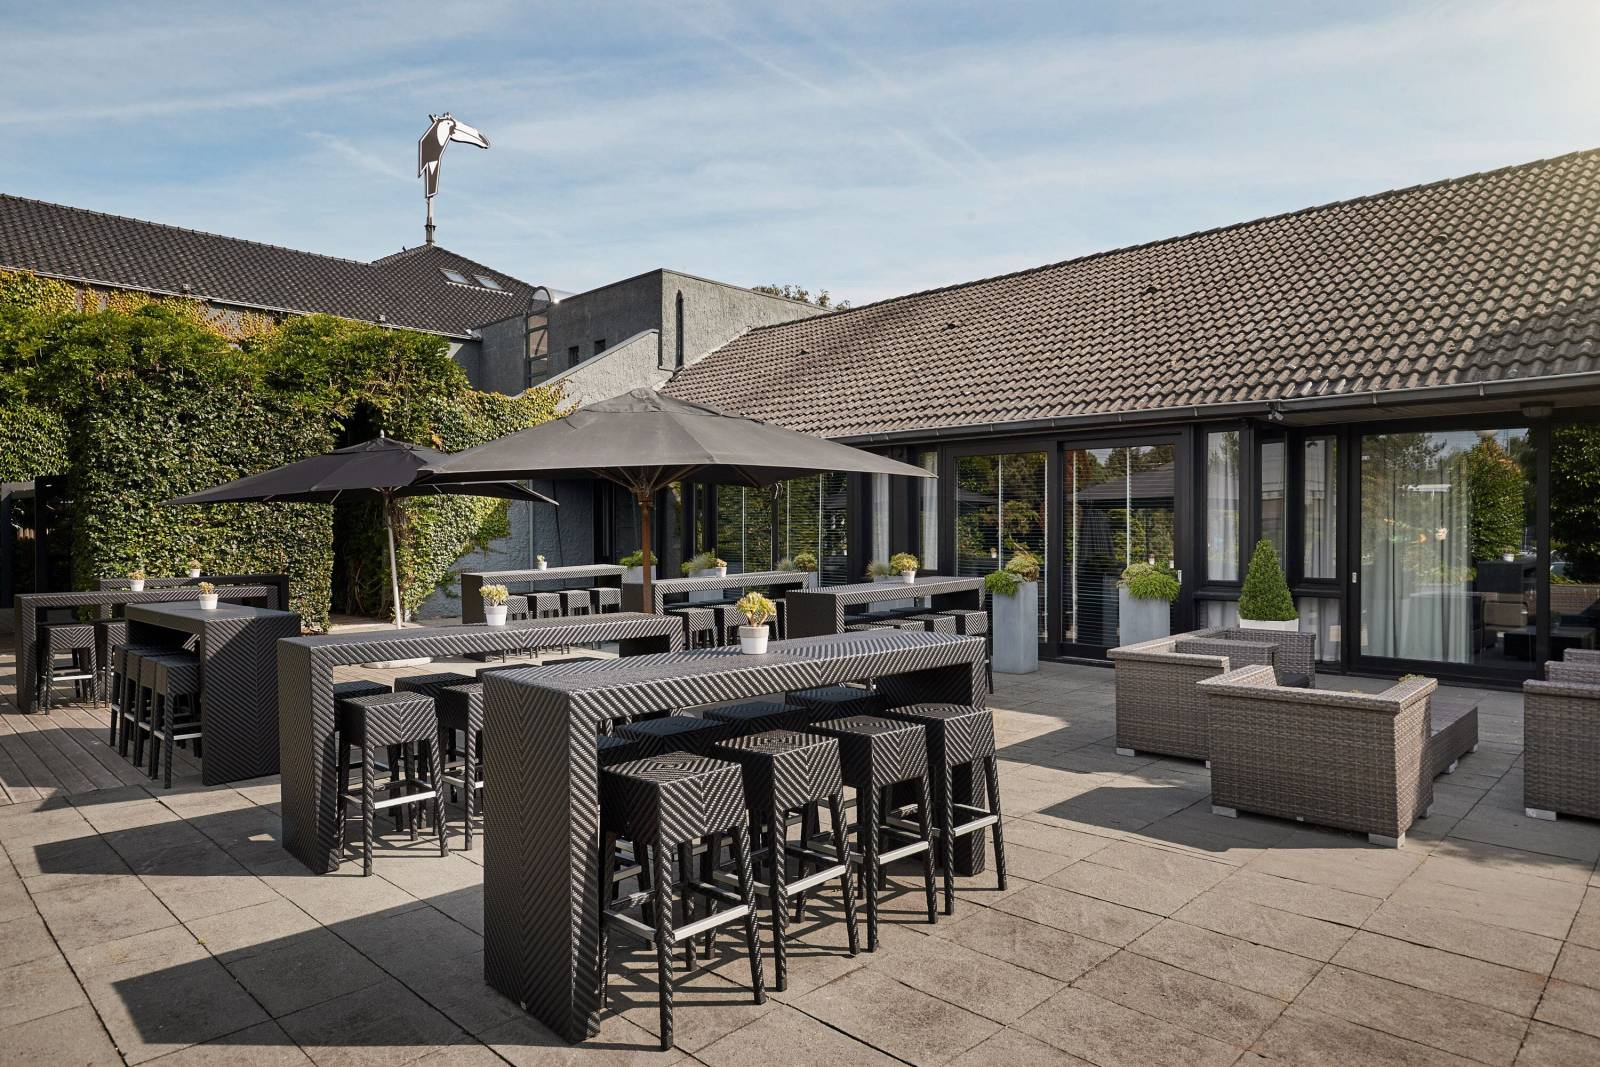 Van der Valk hotel Beveren - Feestzaal - Trouwzaal - House of Weddings - 2